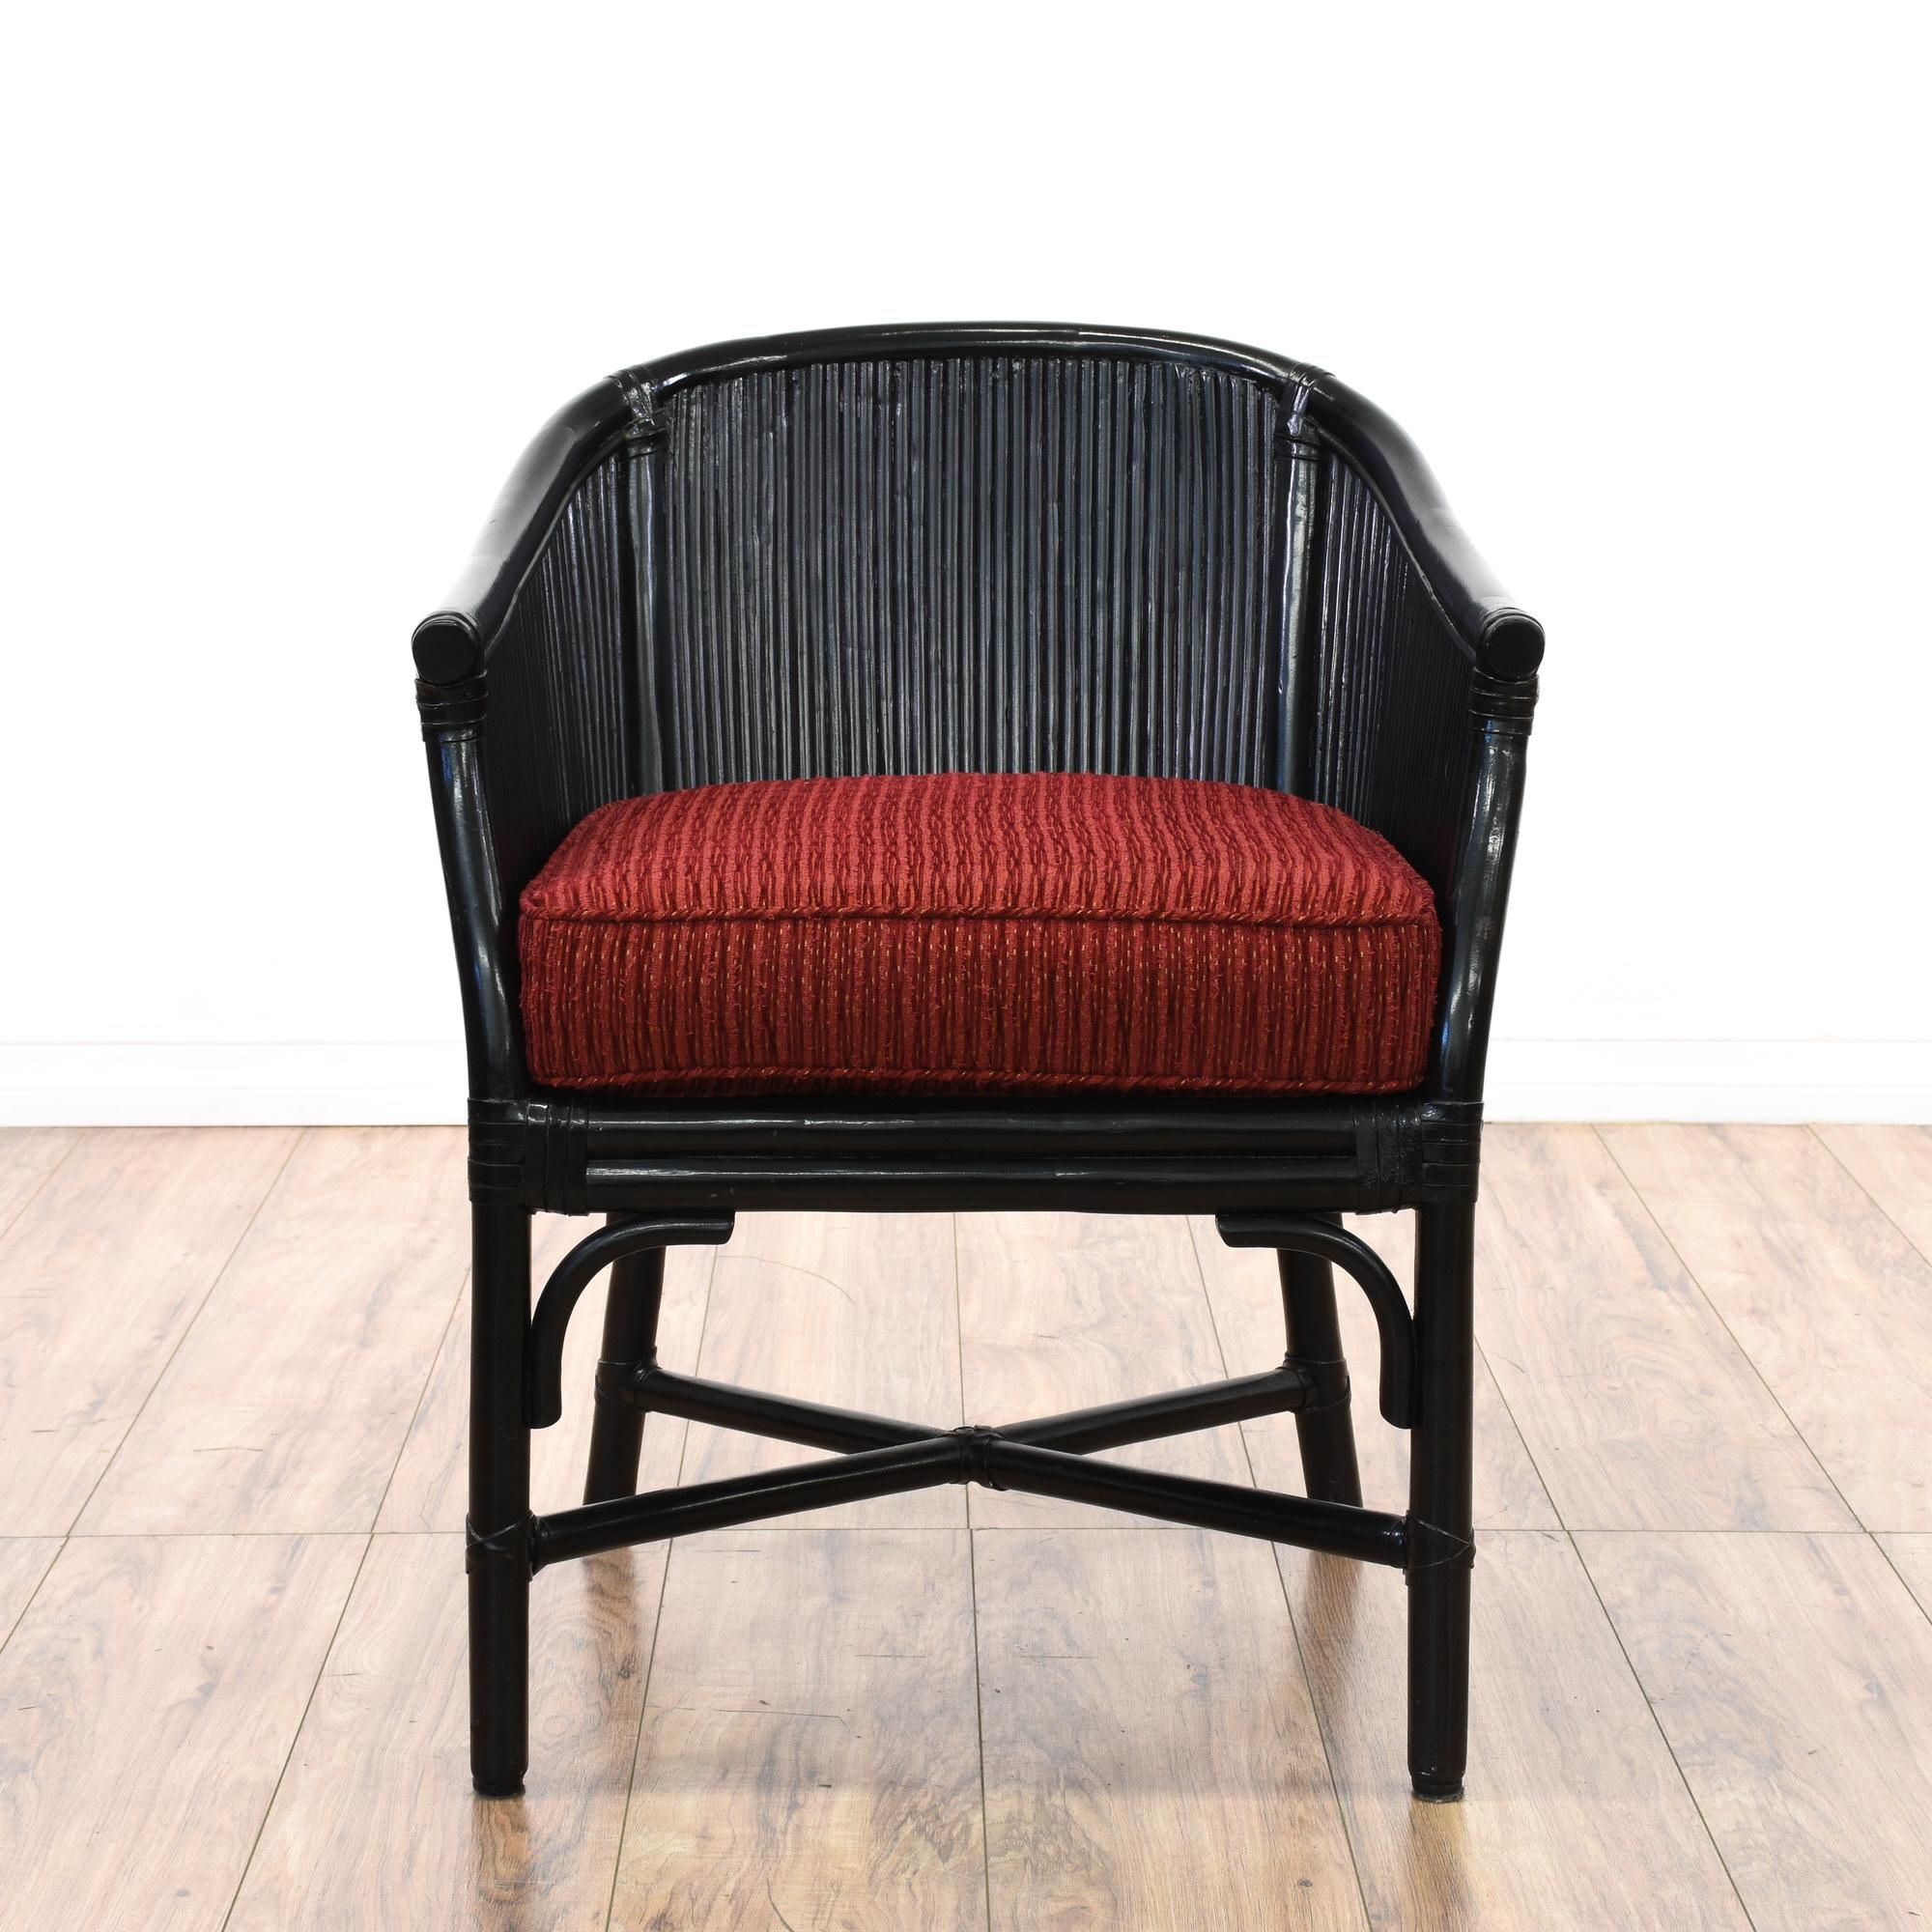 Black rattan accent chair bohemian style chairs accent